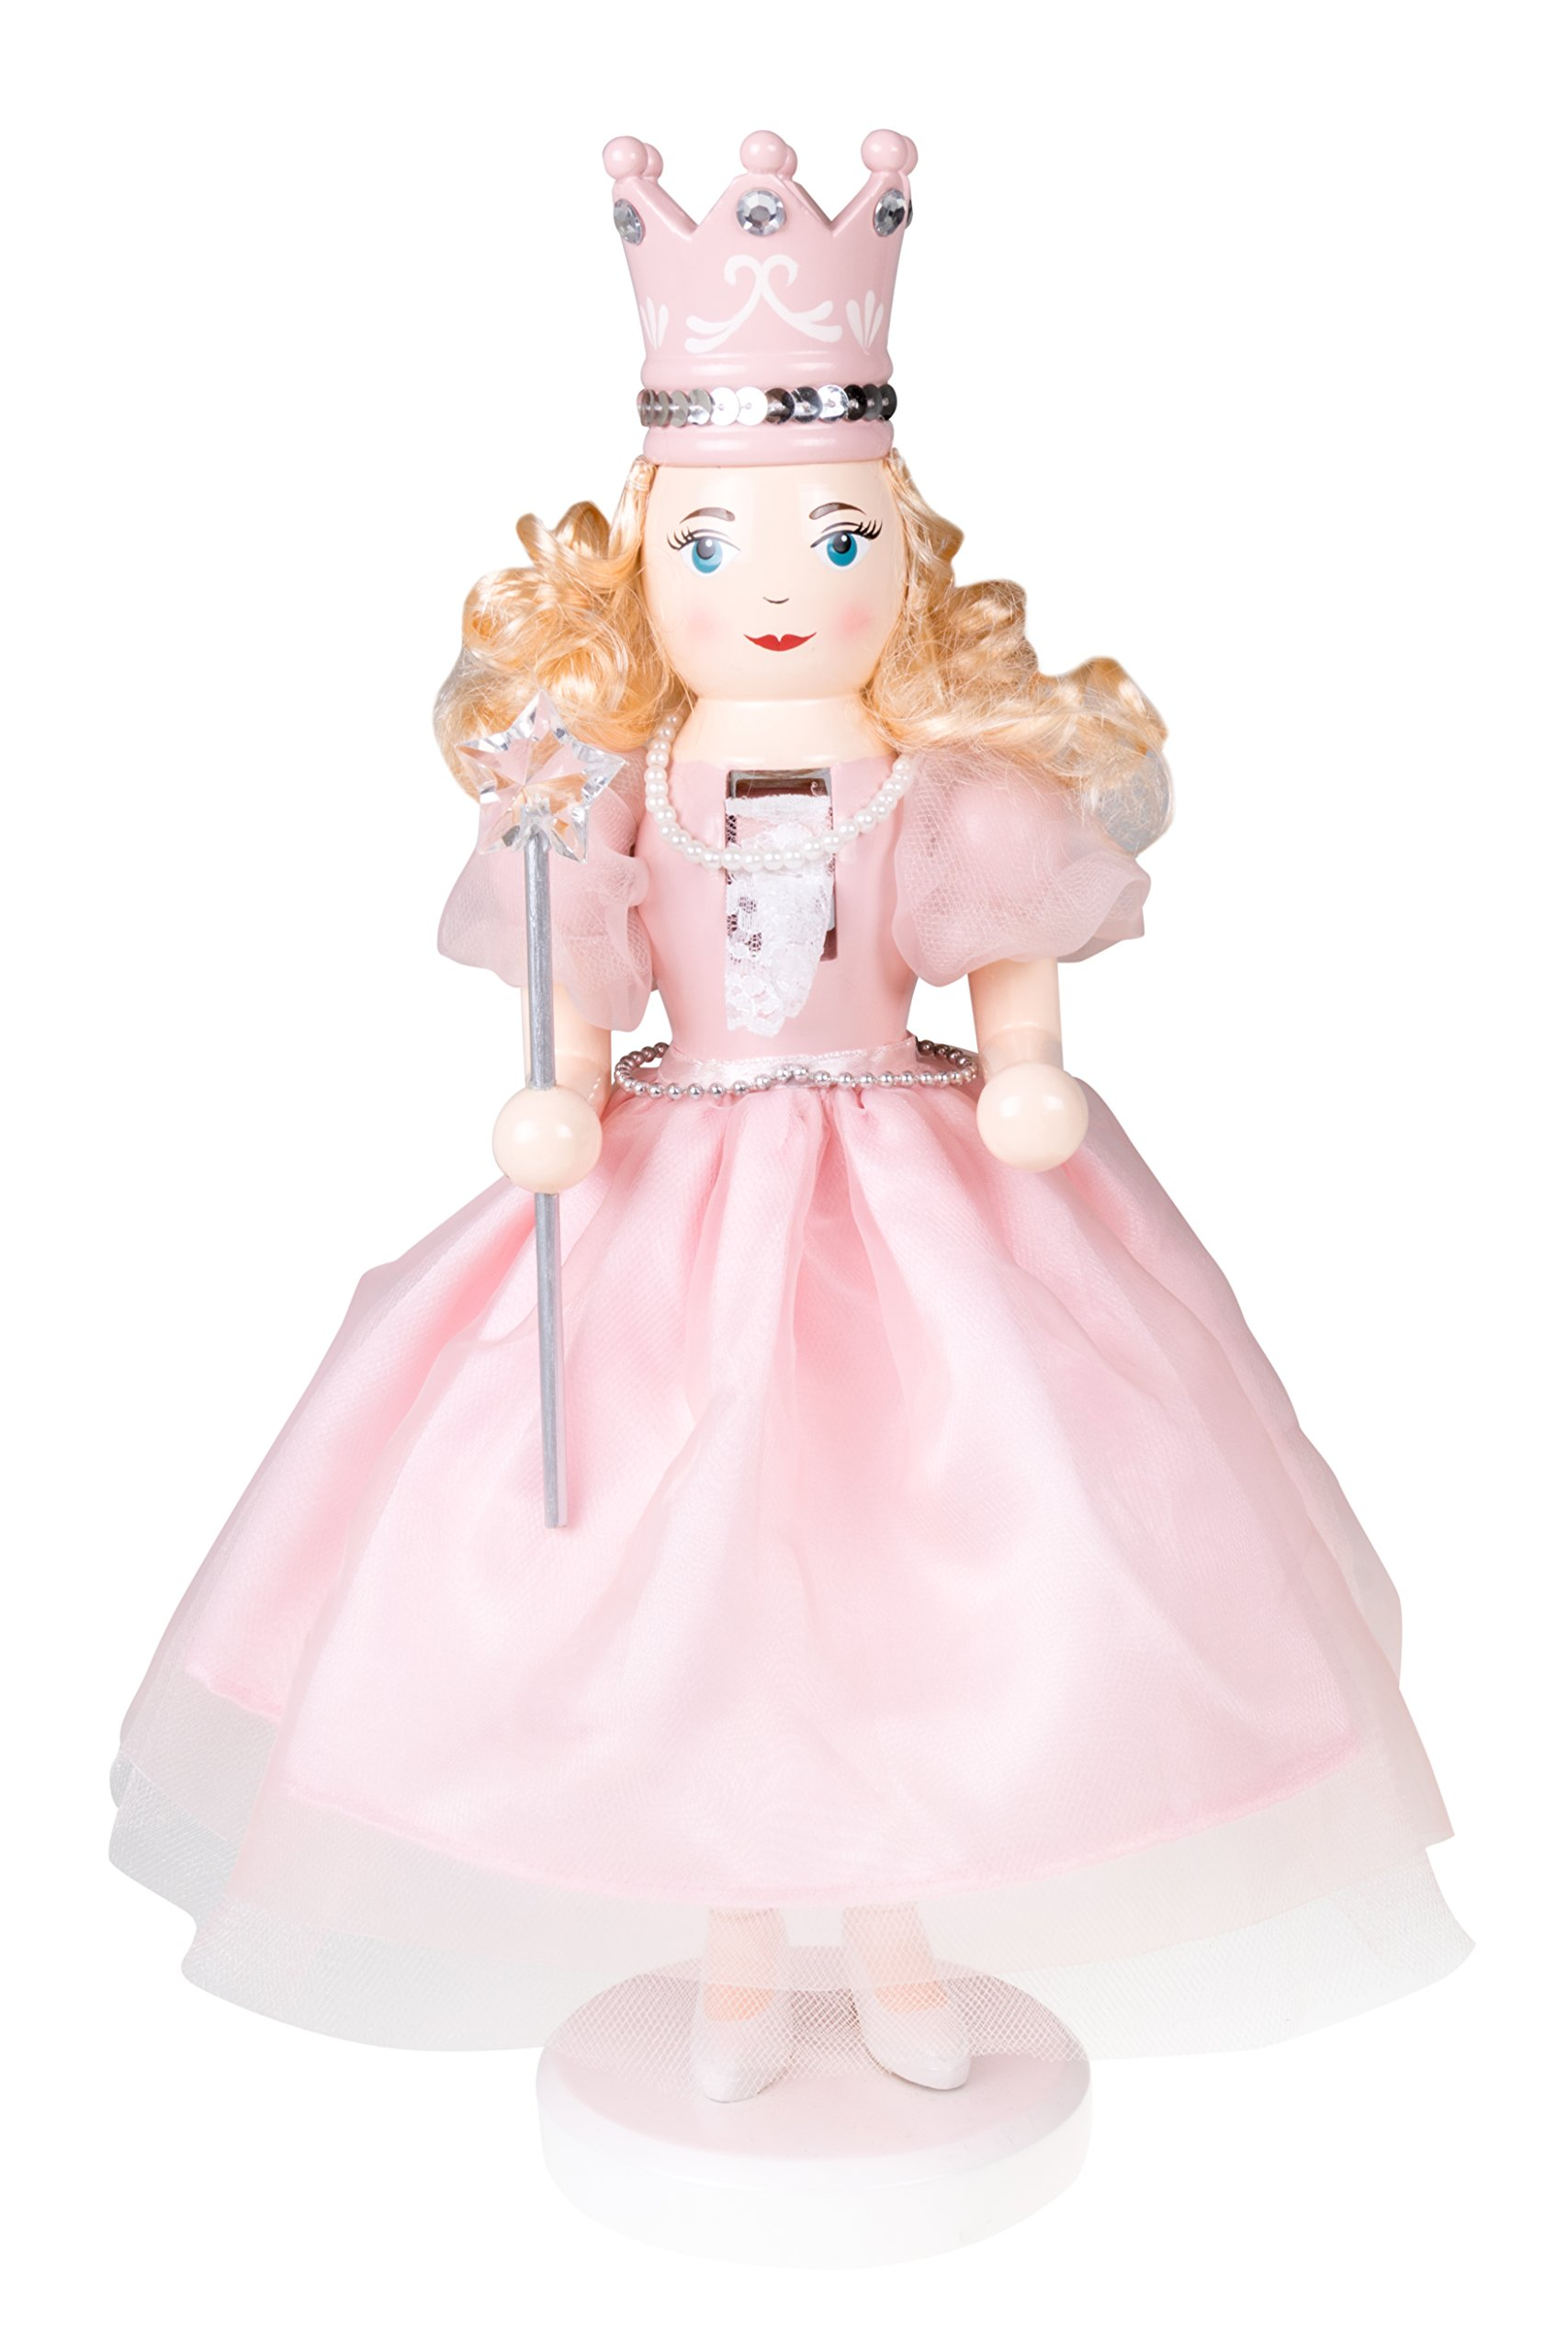 Clever Creations Sugar Plum Fairy Wooden Nutcracker Wearing Pink Dress, Pearl Necklace, Crown | Holding Star Fairy Wand | Festive Decor | Perfect for Shelves & Tables | 100% Wood